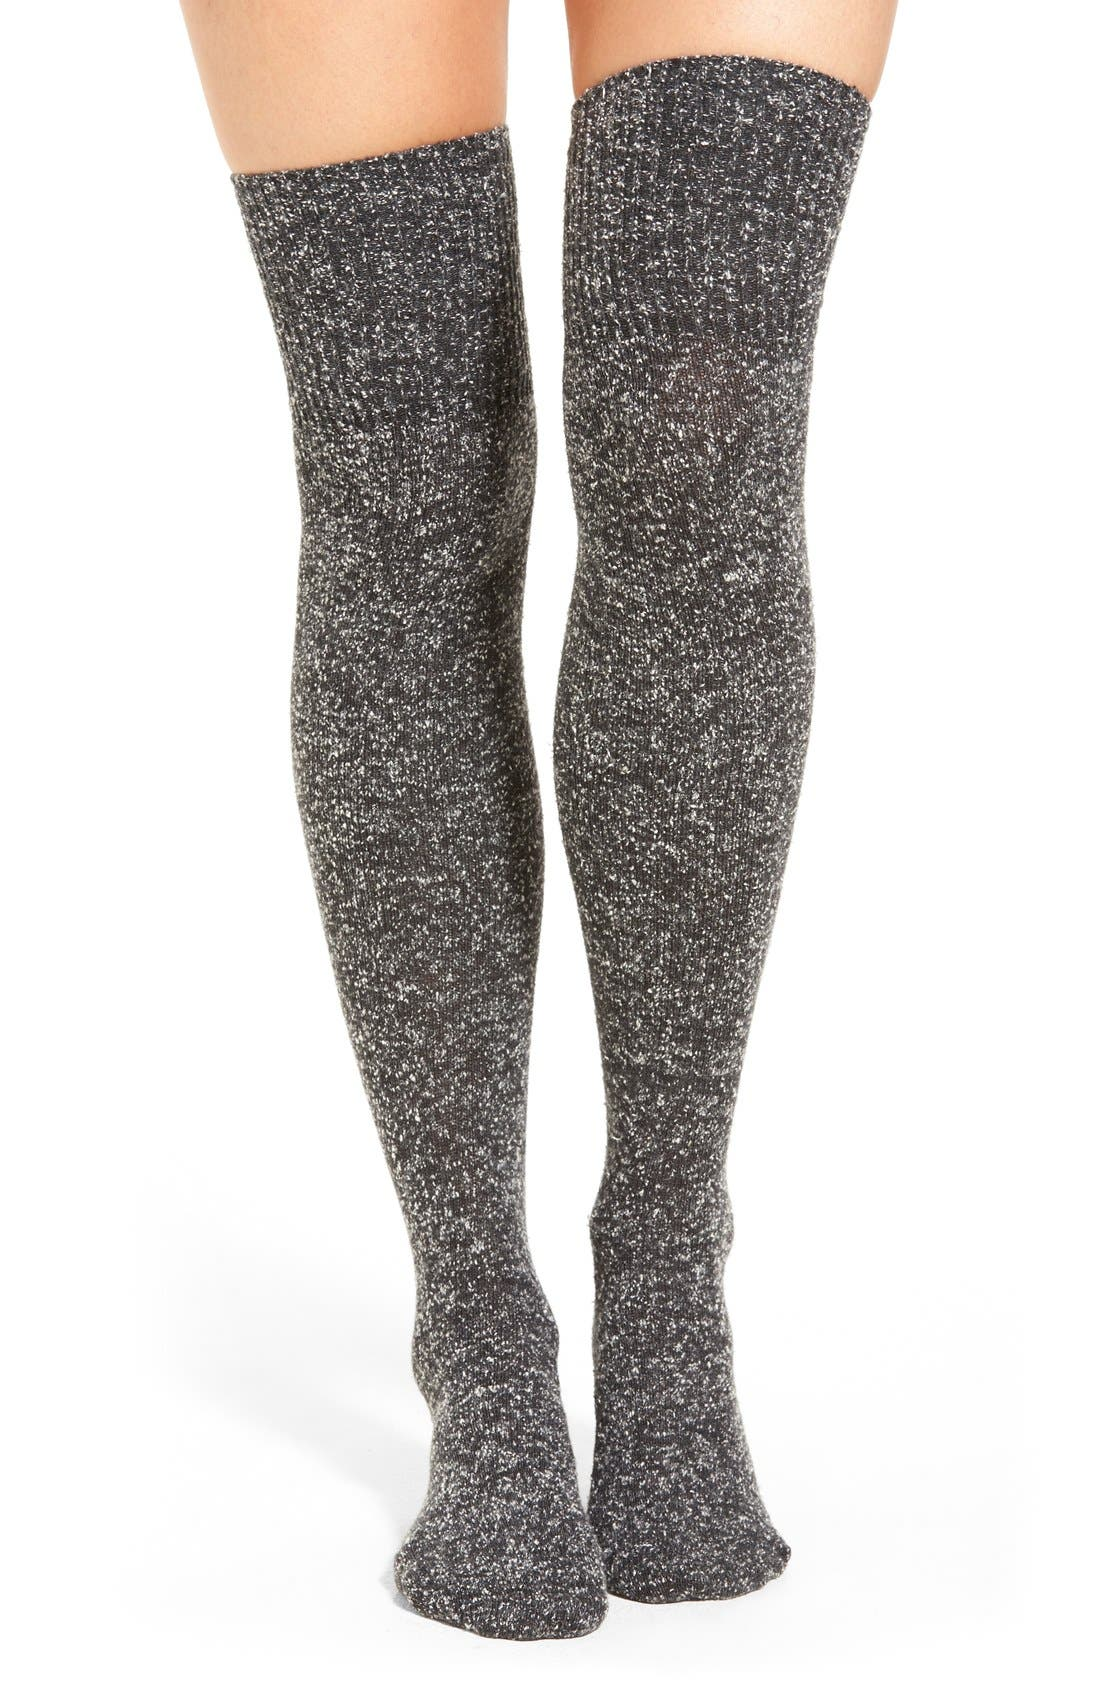 Main Image - Lemon 'Snowfall Tweed' Over the Knee Socks